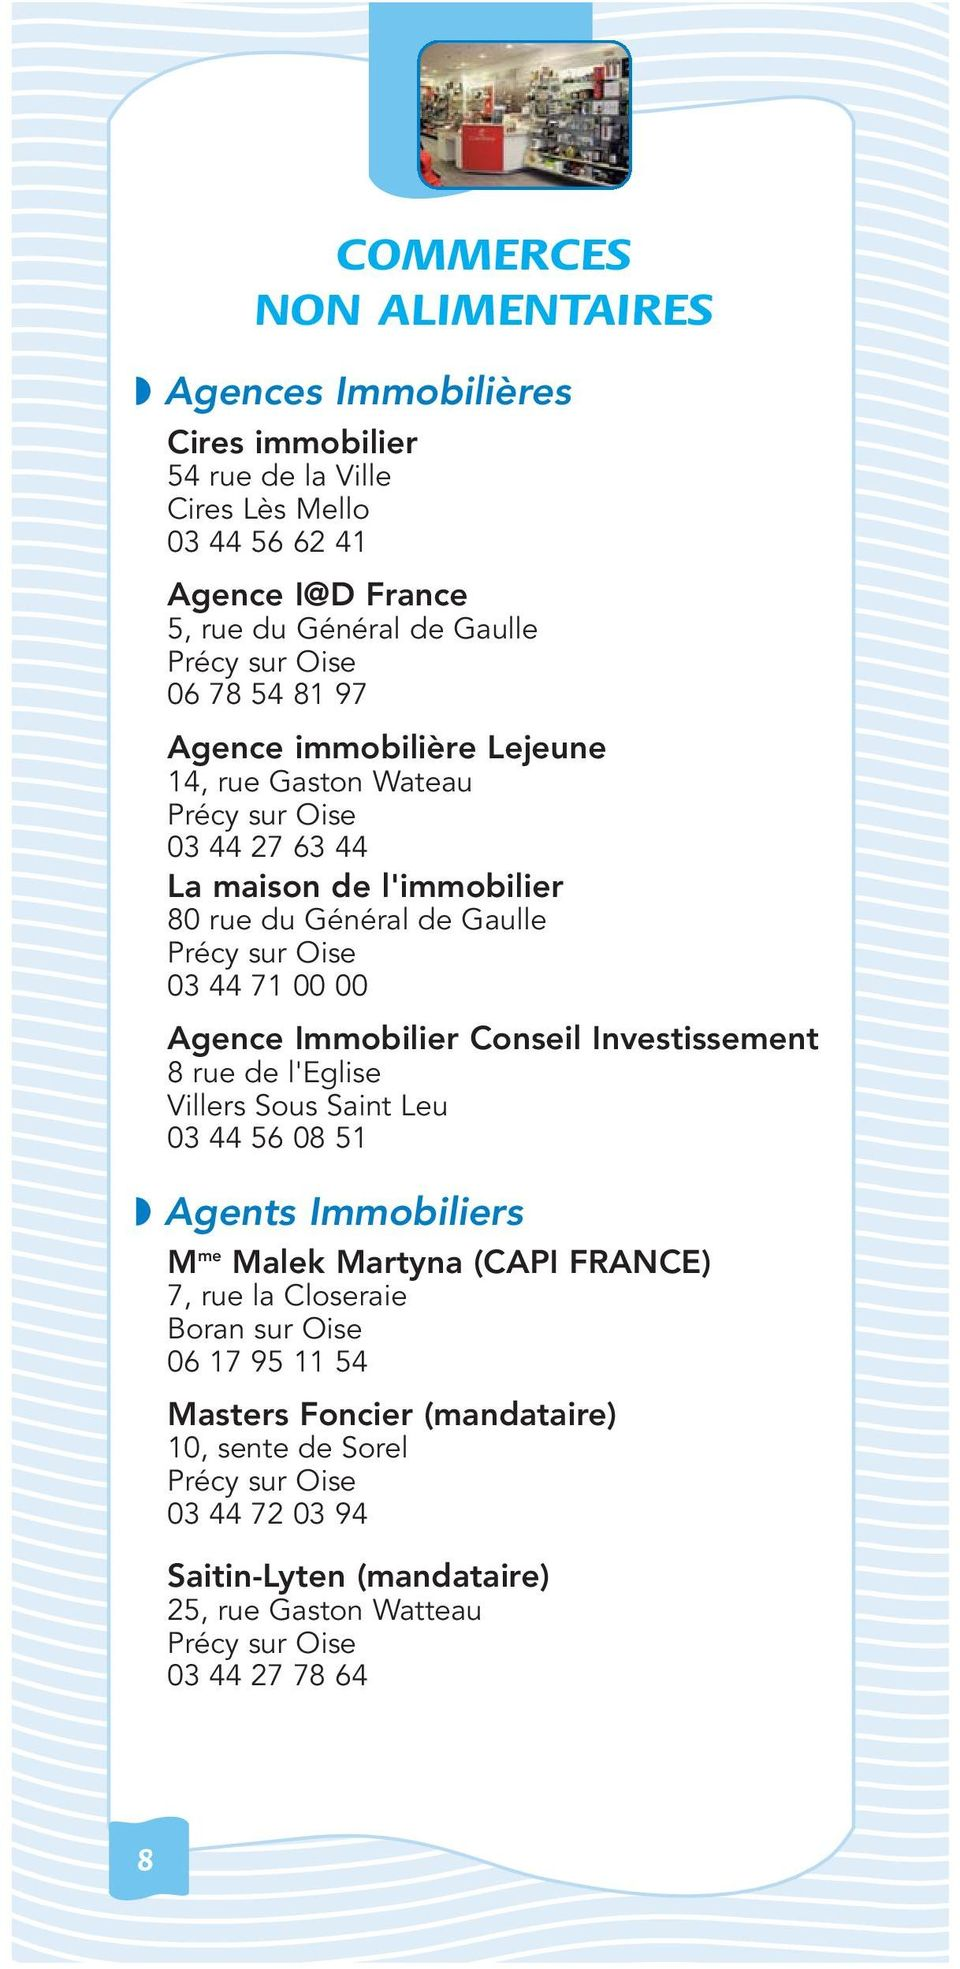 00 Agence Immobilier Conseil Investissement 8 rue de l'eglise 03 44 56 08 51 Agents Immobiliers M me Malek Martyna (CAPI FRANCE) 7, rue la